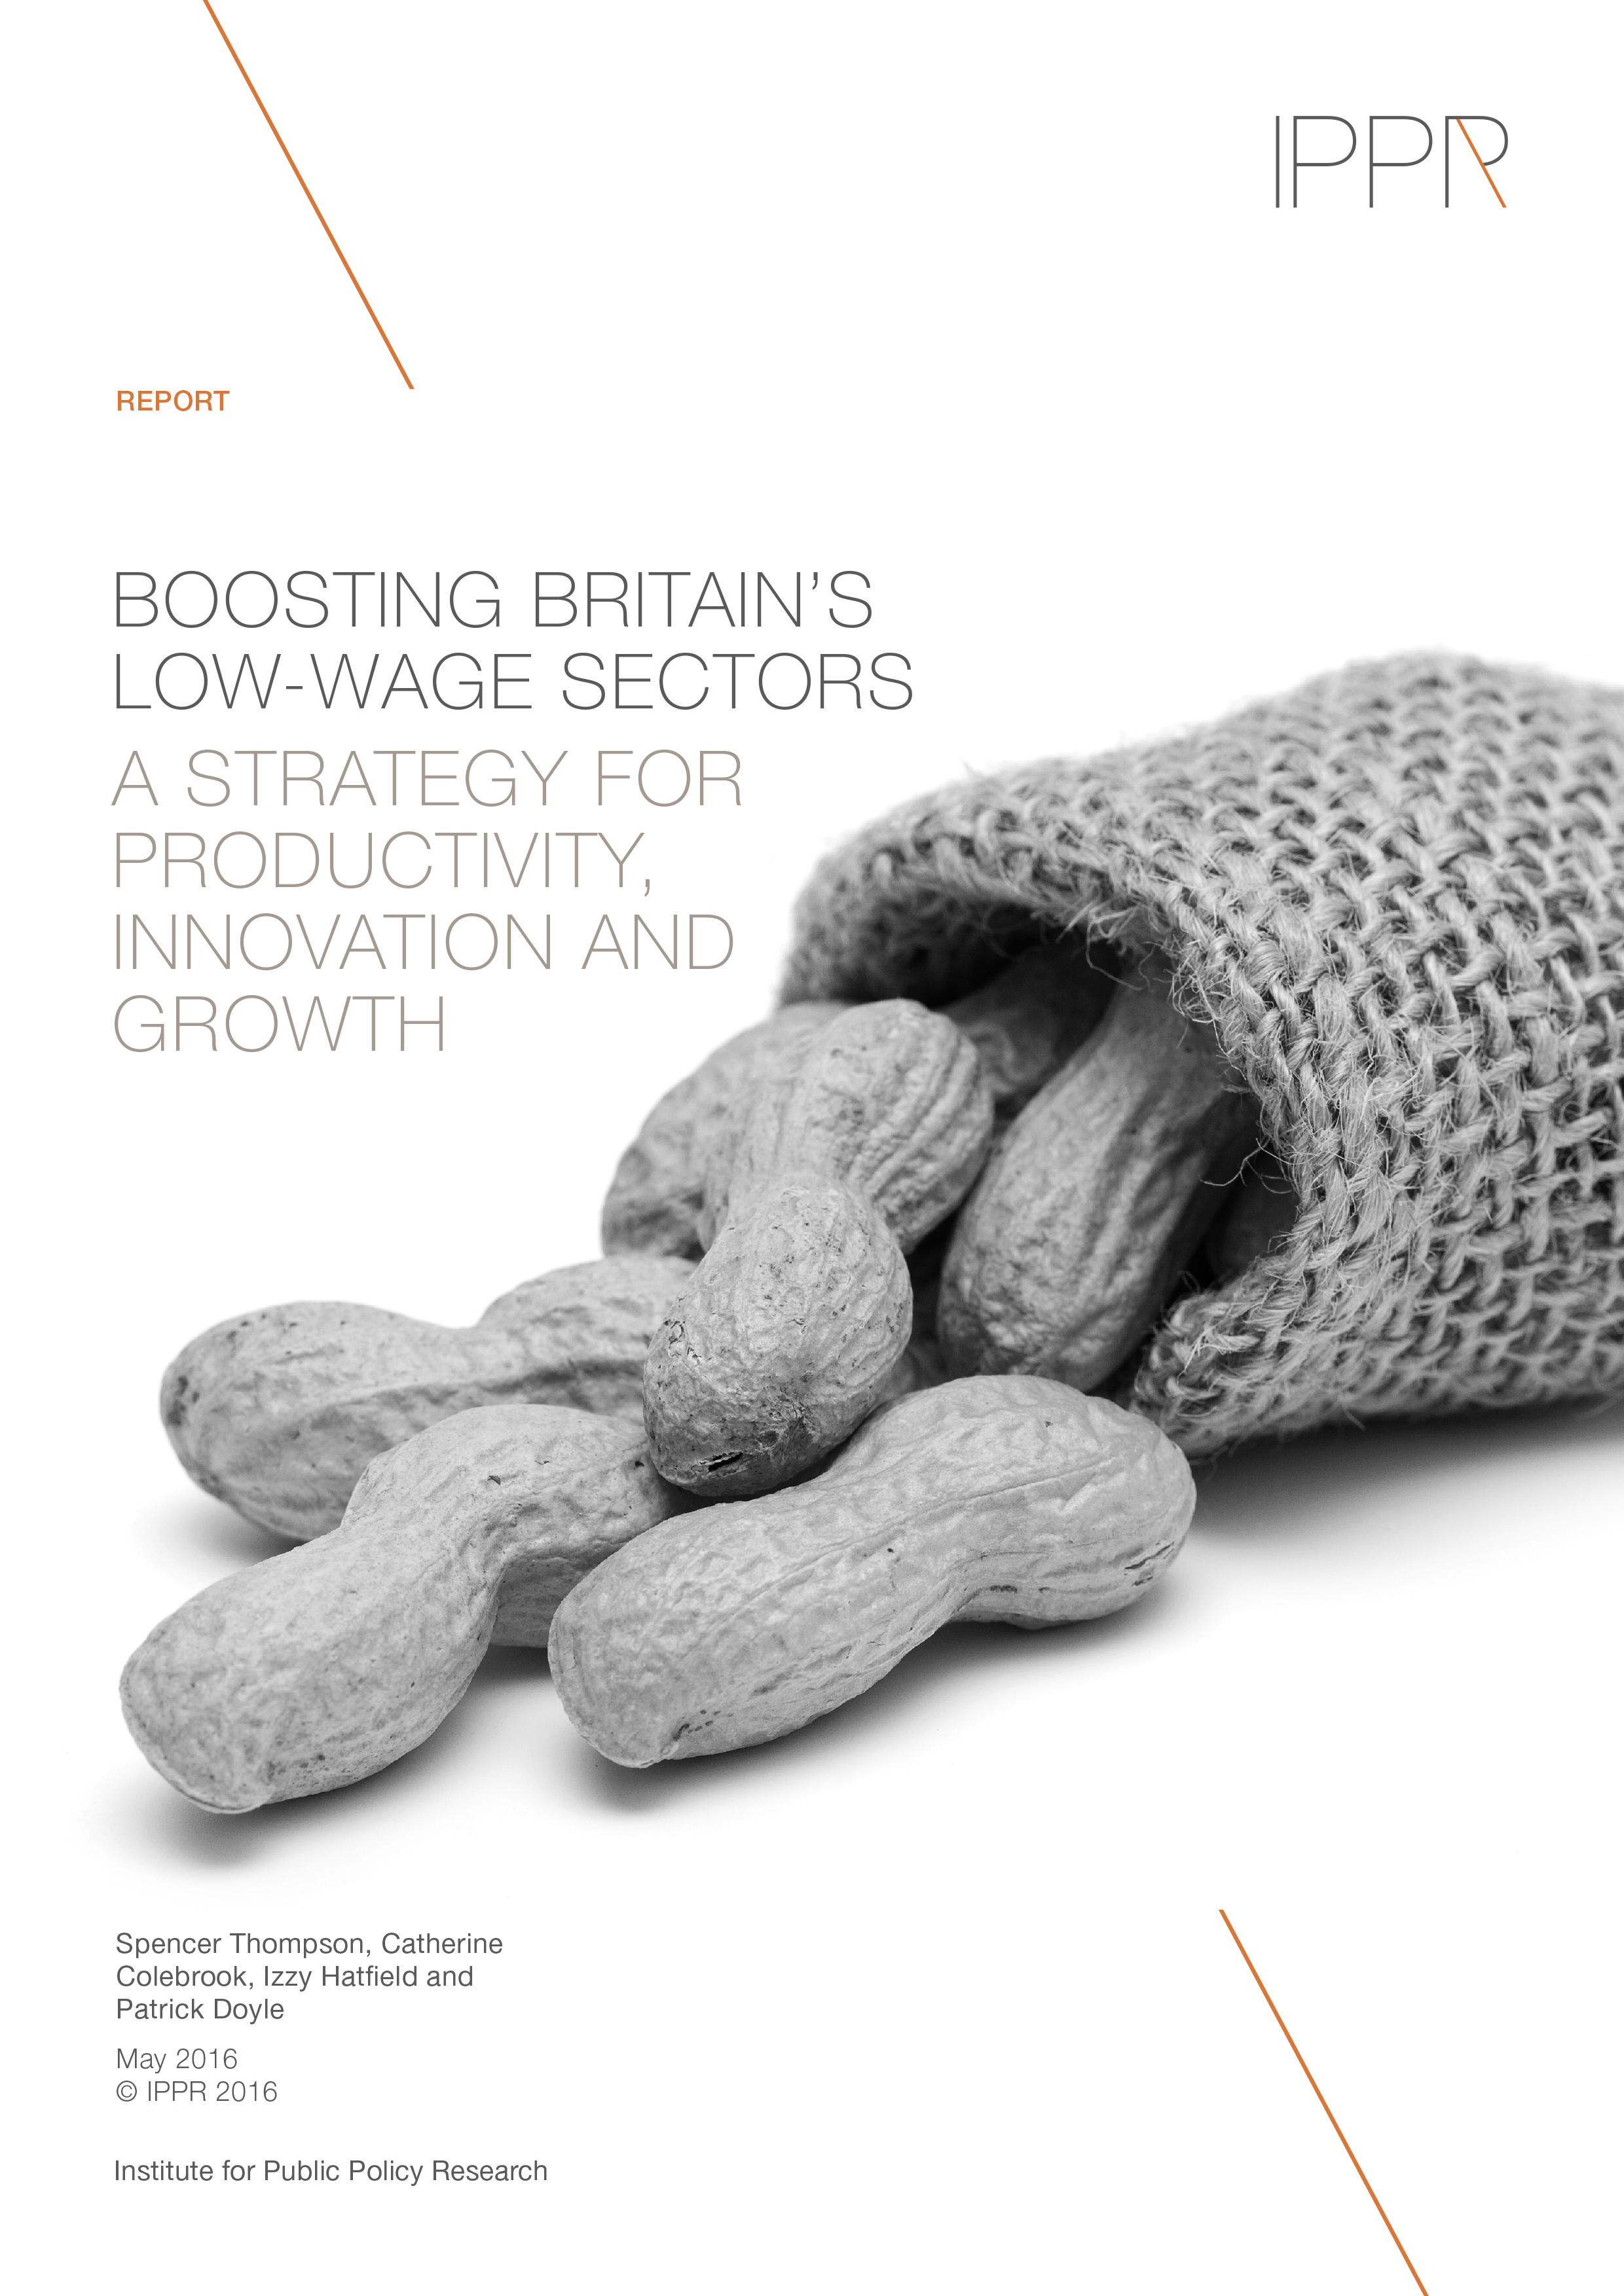 Boosting Britain's low-wage sectors: A strategy for productivity, innovation and growth